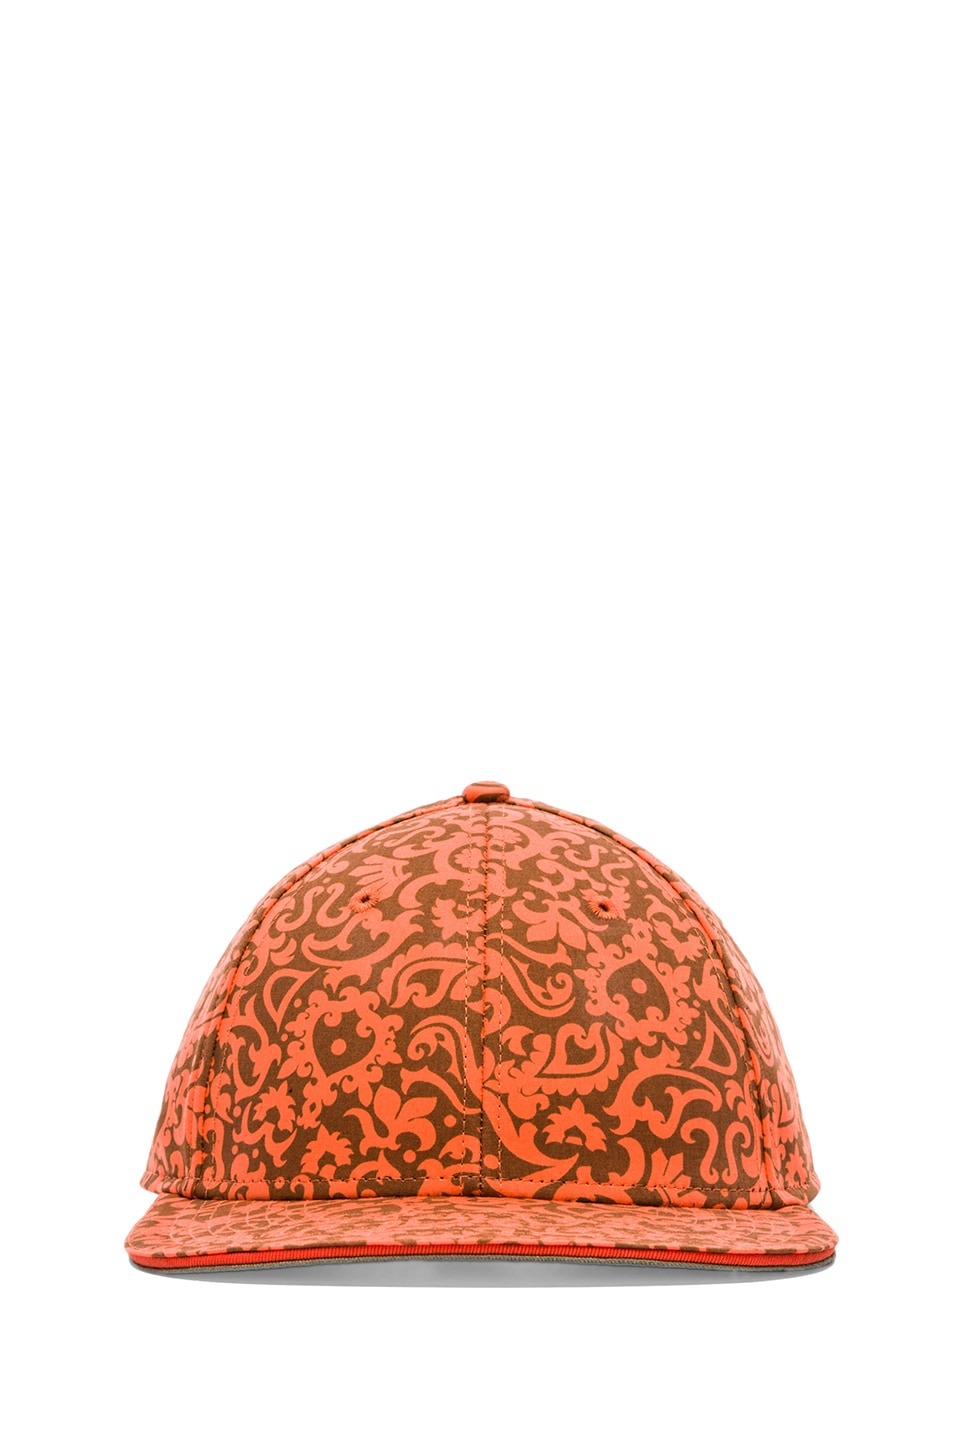 Marc by Marc Jacobs Mini Malibu Print Cap in Orange Multi